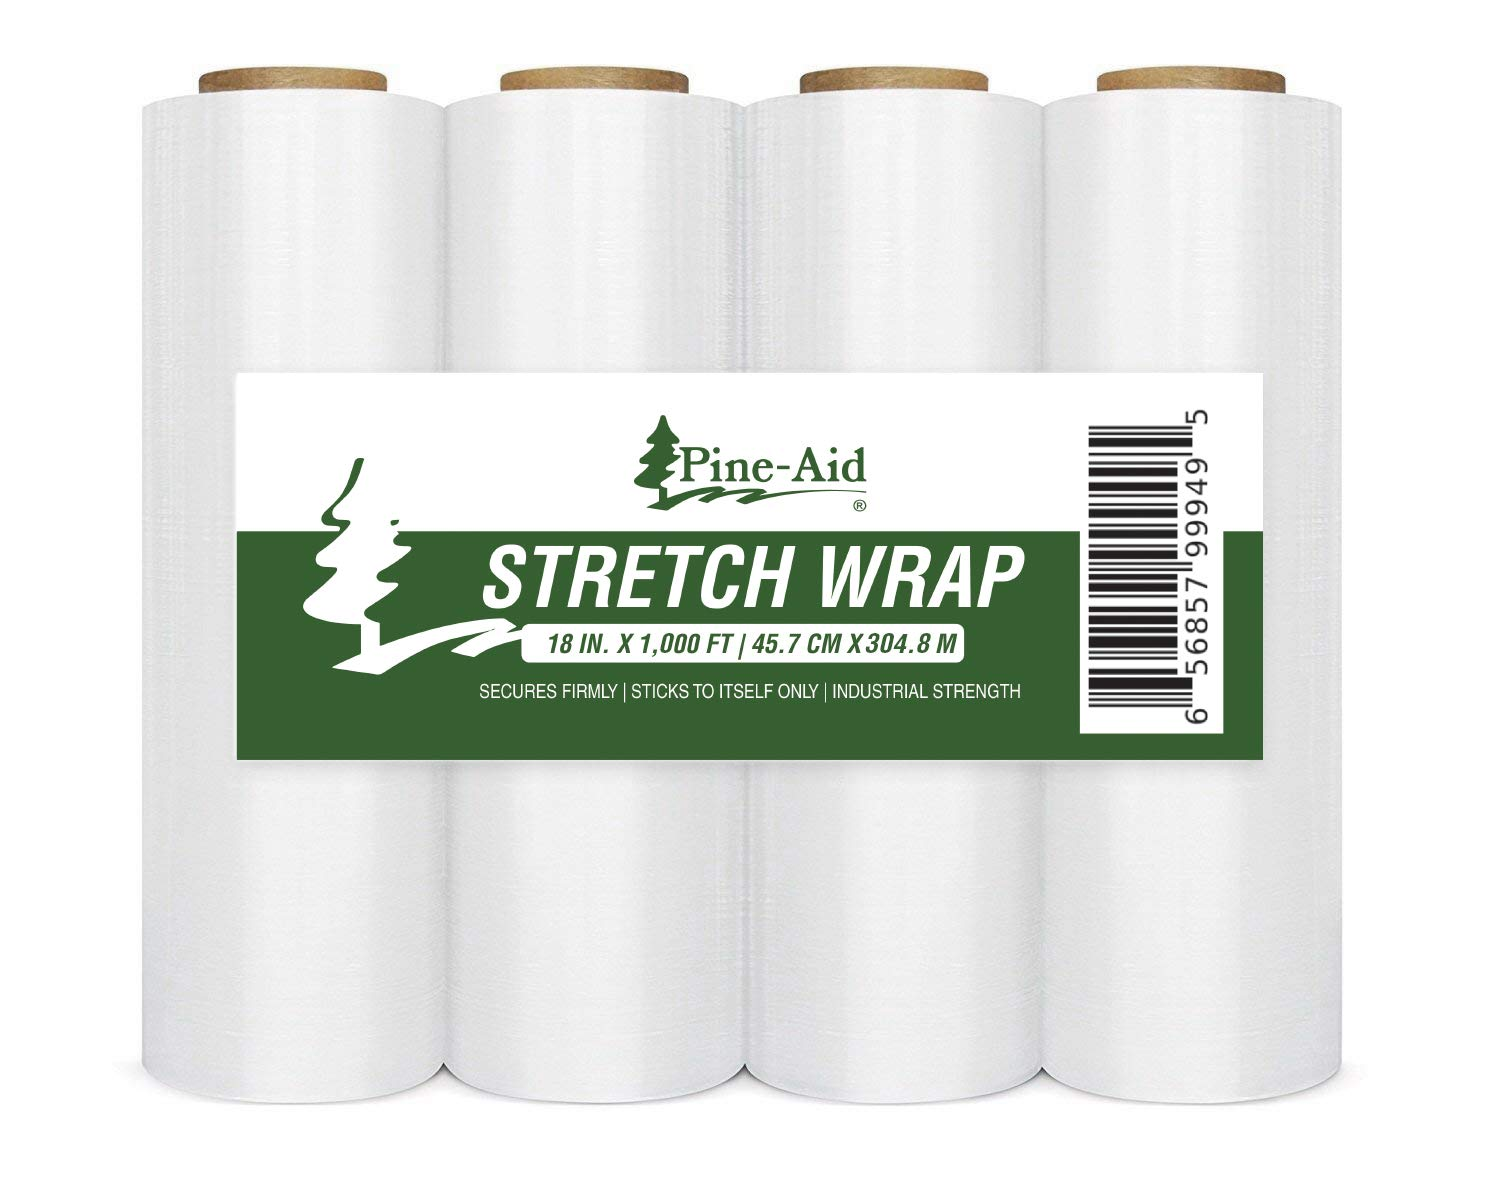 Stretch Wrap - 18'' X 1000 Sq Ft X 80 Gauge (20 Microns) Industrial Strength Thick & Most Durable, Self-Adhesive Film - Cling/Shrink/Pallet Wrap Best for Packing and Moving (4) by Pine-Aid (Image #1)